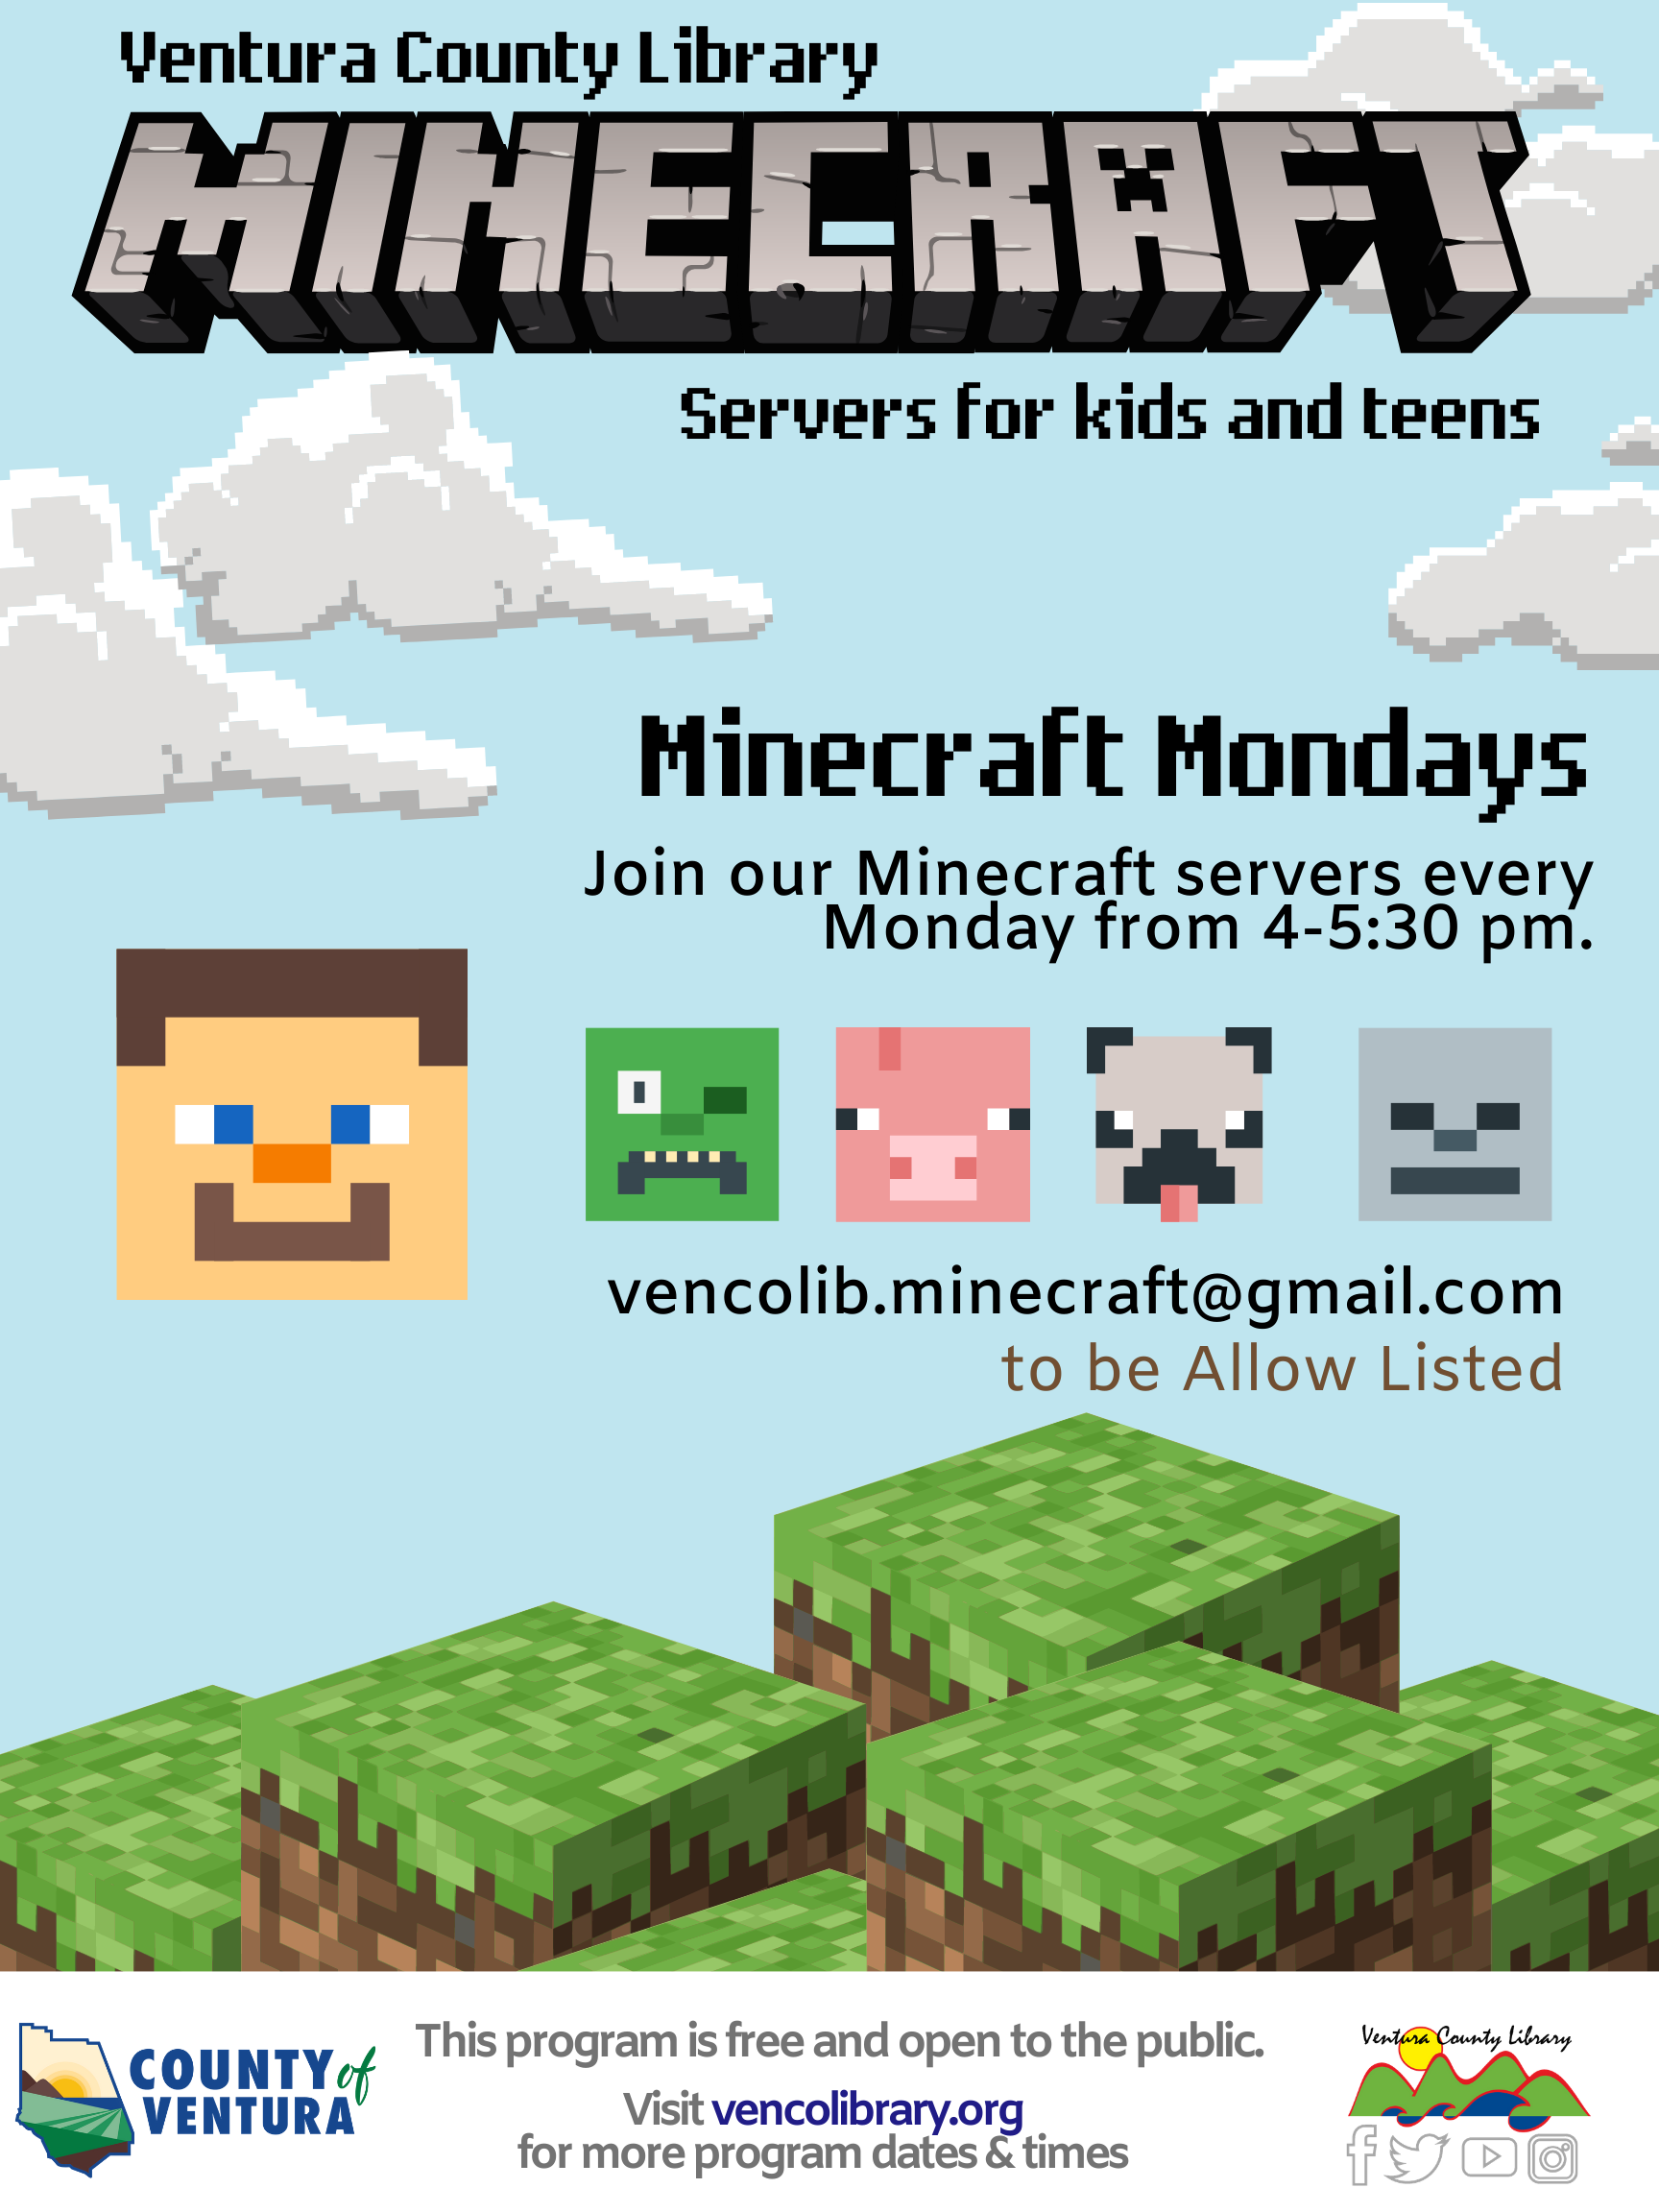 Ventura County Library Minecraft Server for Kids and Teens  Minecraft Mondays Join the Minecraft server every Monday from 4-6 PM.Email venoclib.minecraft@gmail.com to be invited to the server.  Square images of Minecraft characters with some grassland blocks and Ventura County Library's logo.